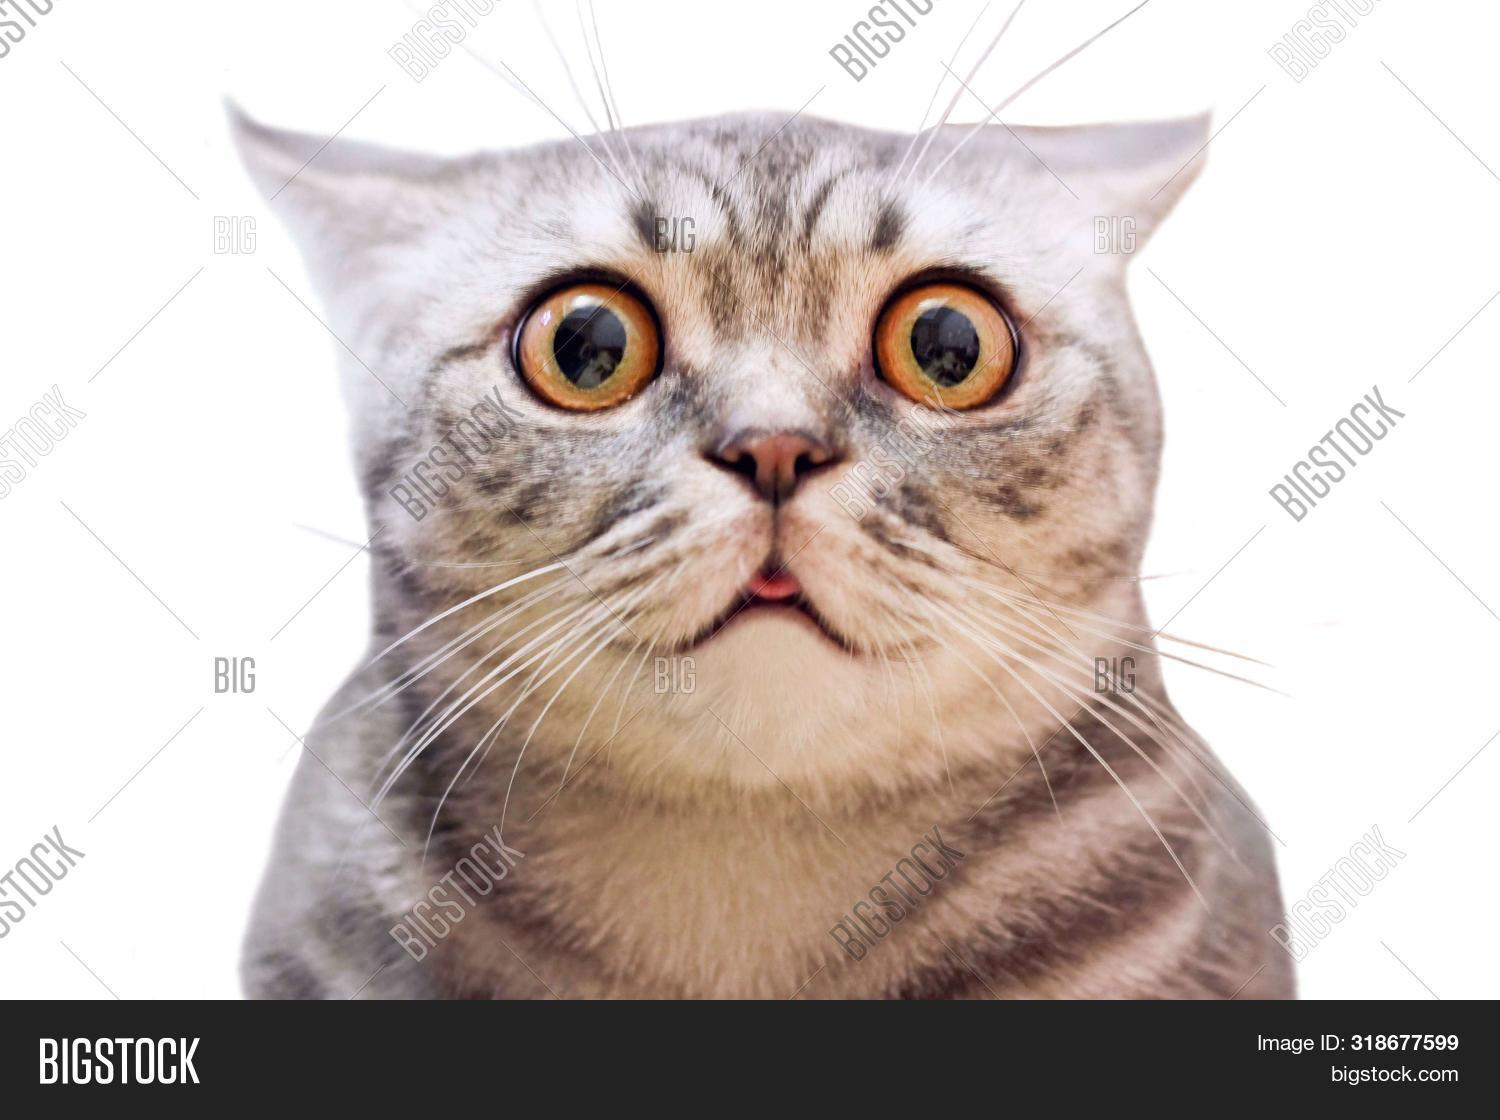 Young Crazy Surprised Cat Make Big Eyes Closeup. American Shorthair Surprised Cat Or Kitten Isolated